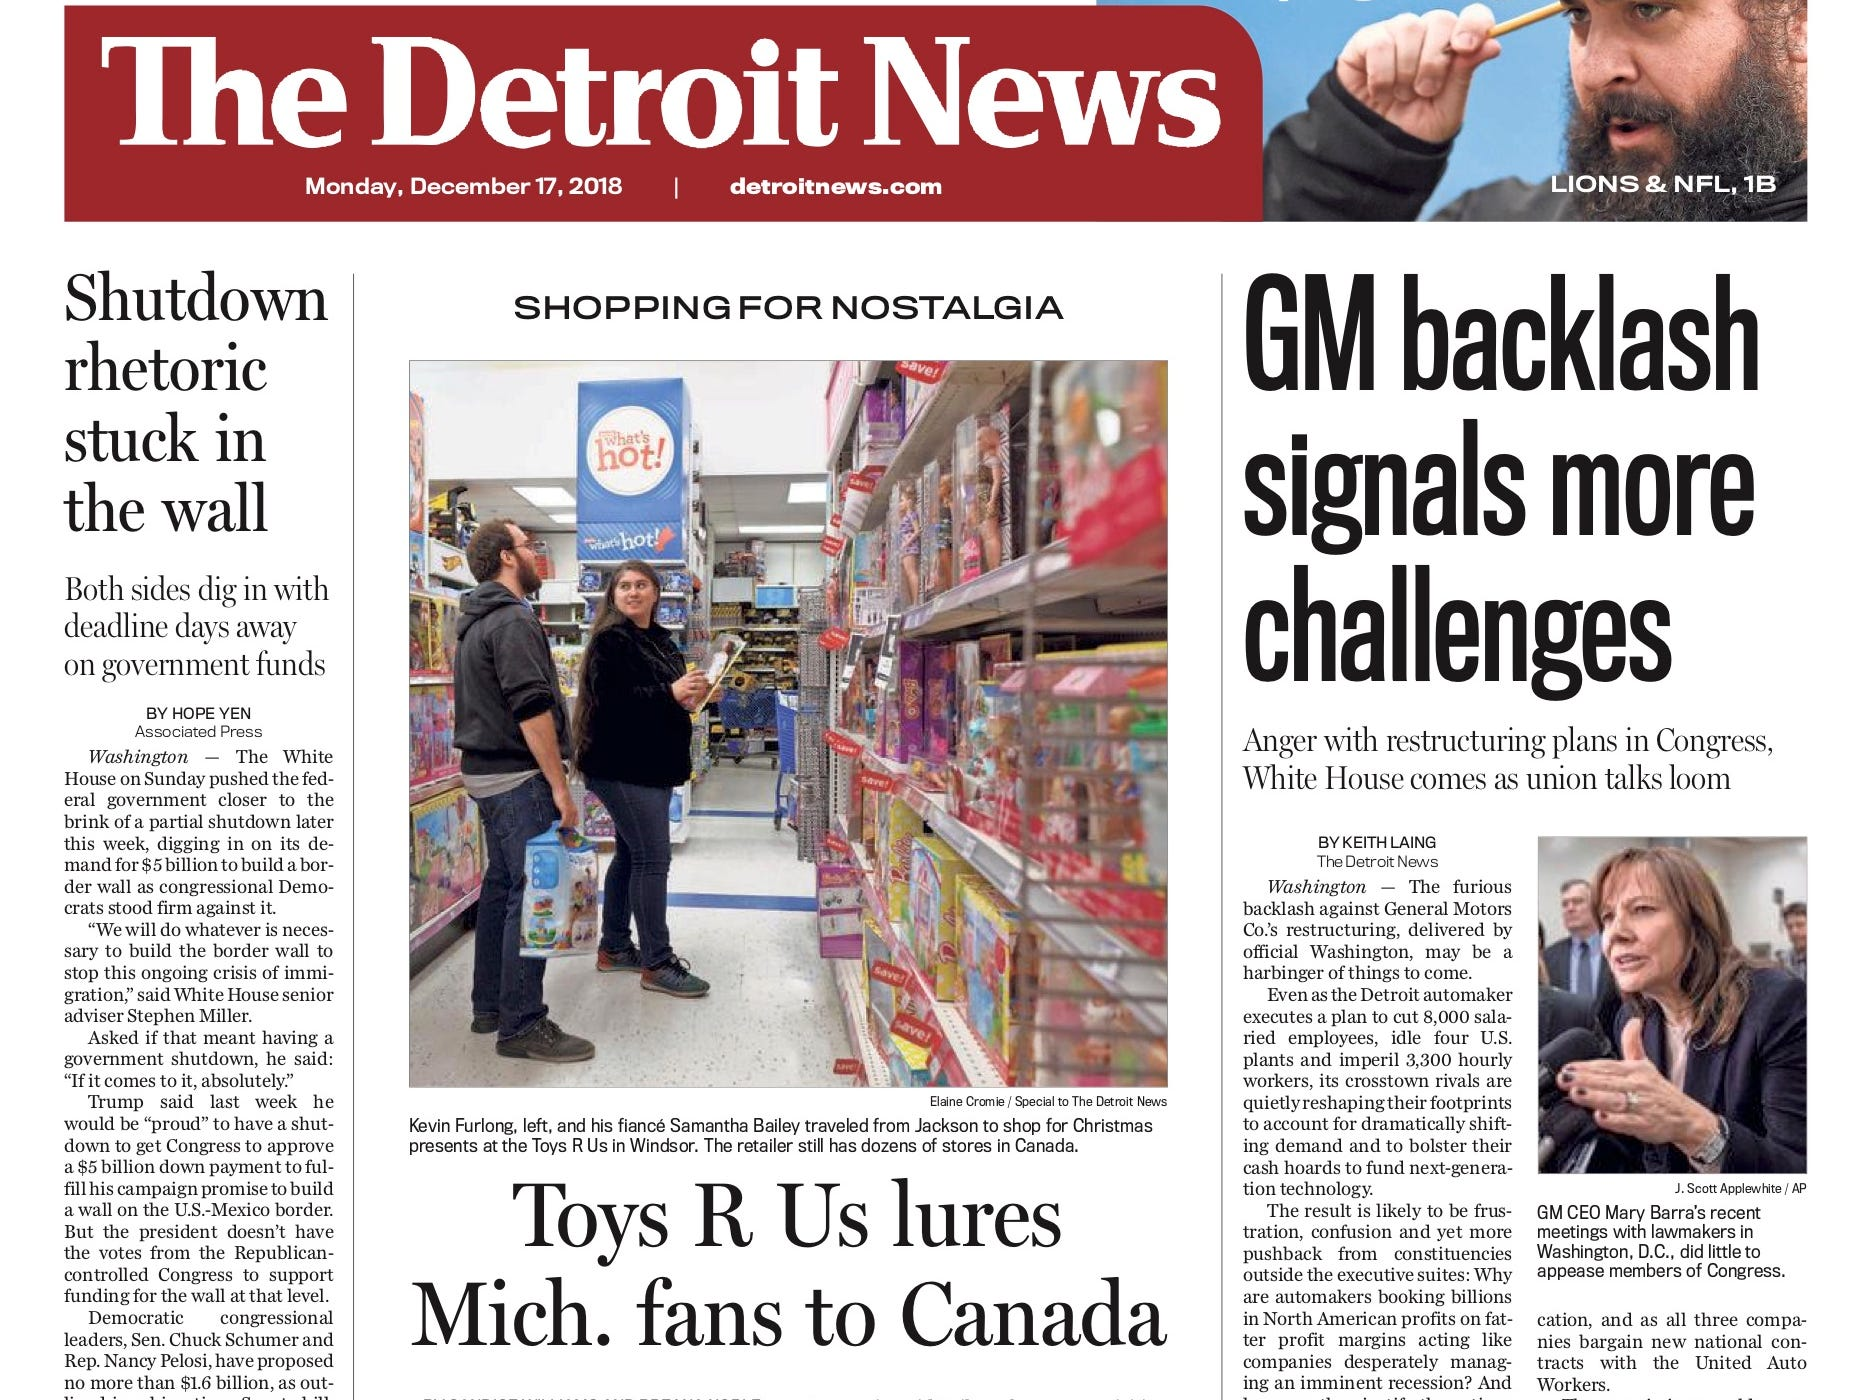 The front page of the Detroit News on December 17, 2018.